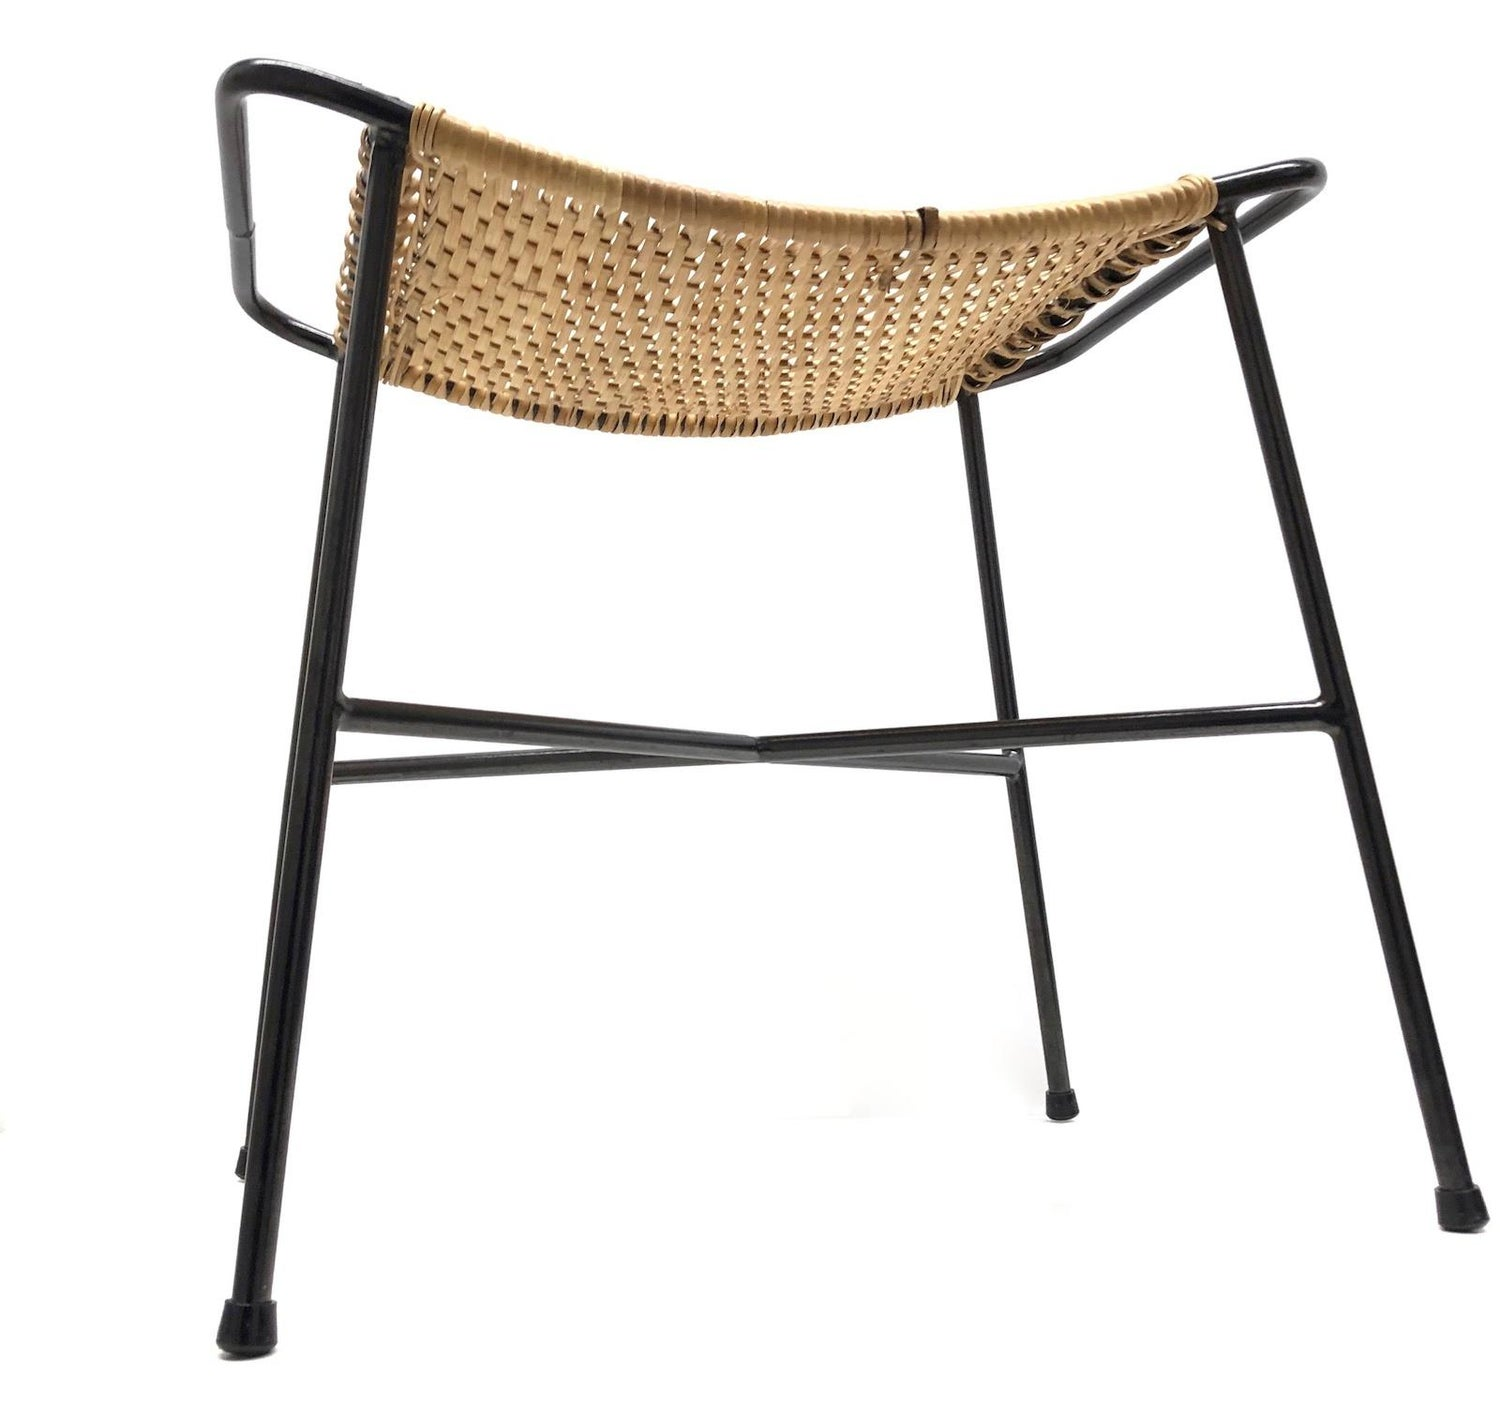 Incredible Wire Wicker Work Mid Century Modern Footrest Ottoman Stool String Style 1950S Evergreenethics Interior Chair Design Evergreenethicsorg